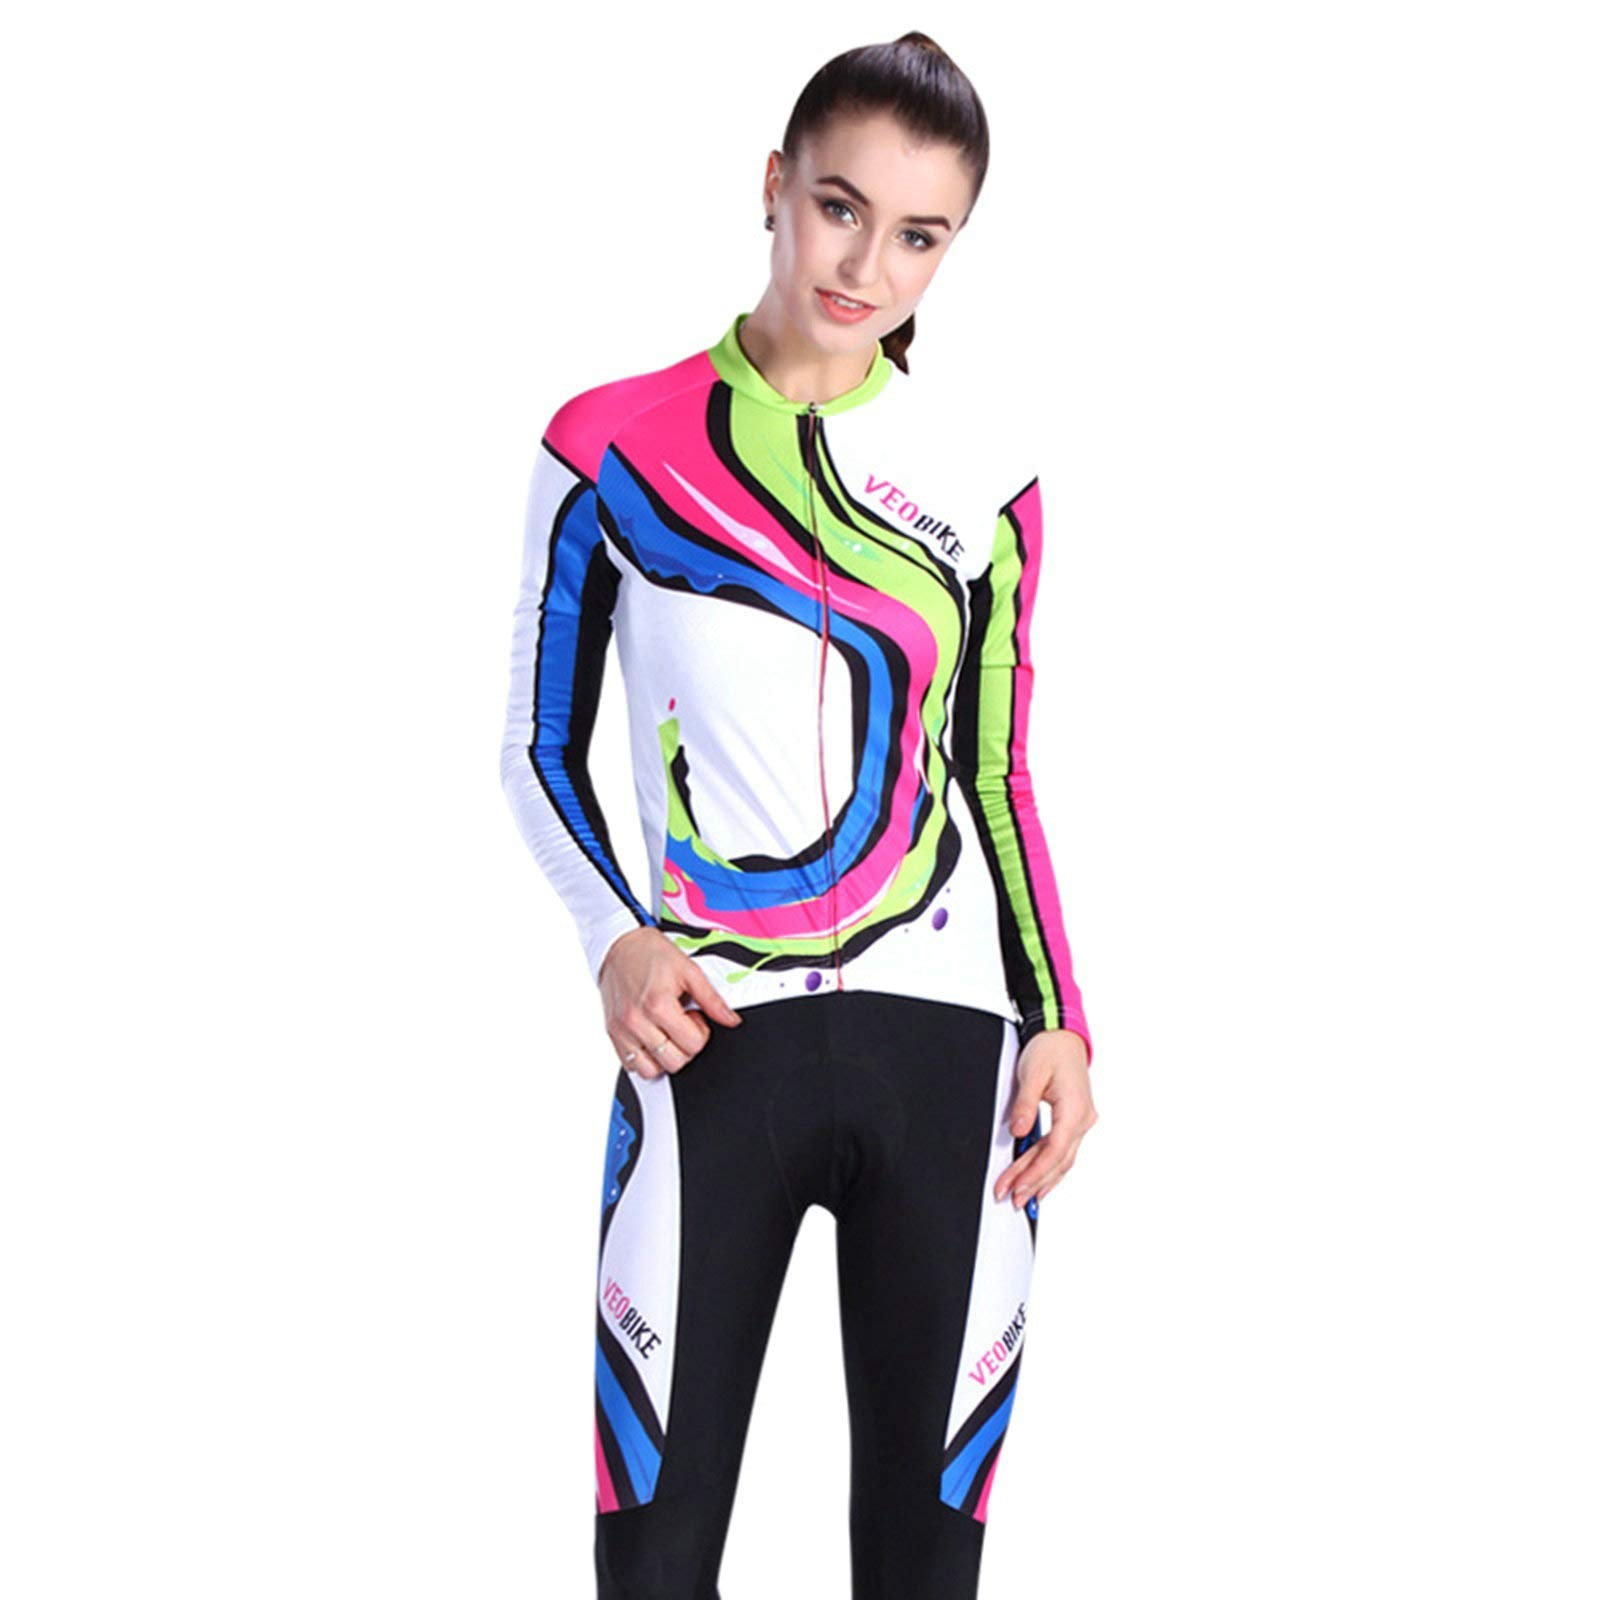 Aooaz Women Cycling Set Shirt and Tights Multicolor Design Size S Sport Accessory